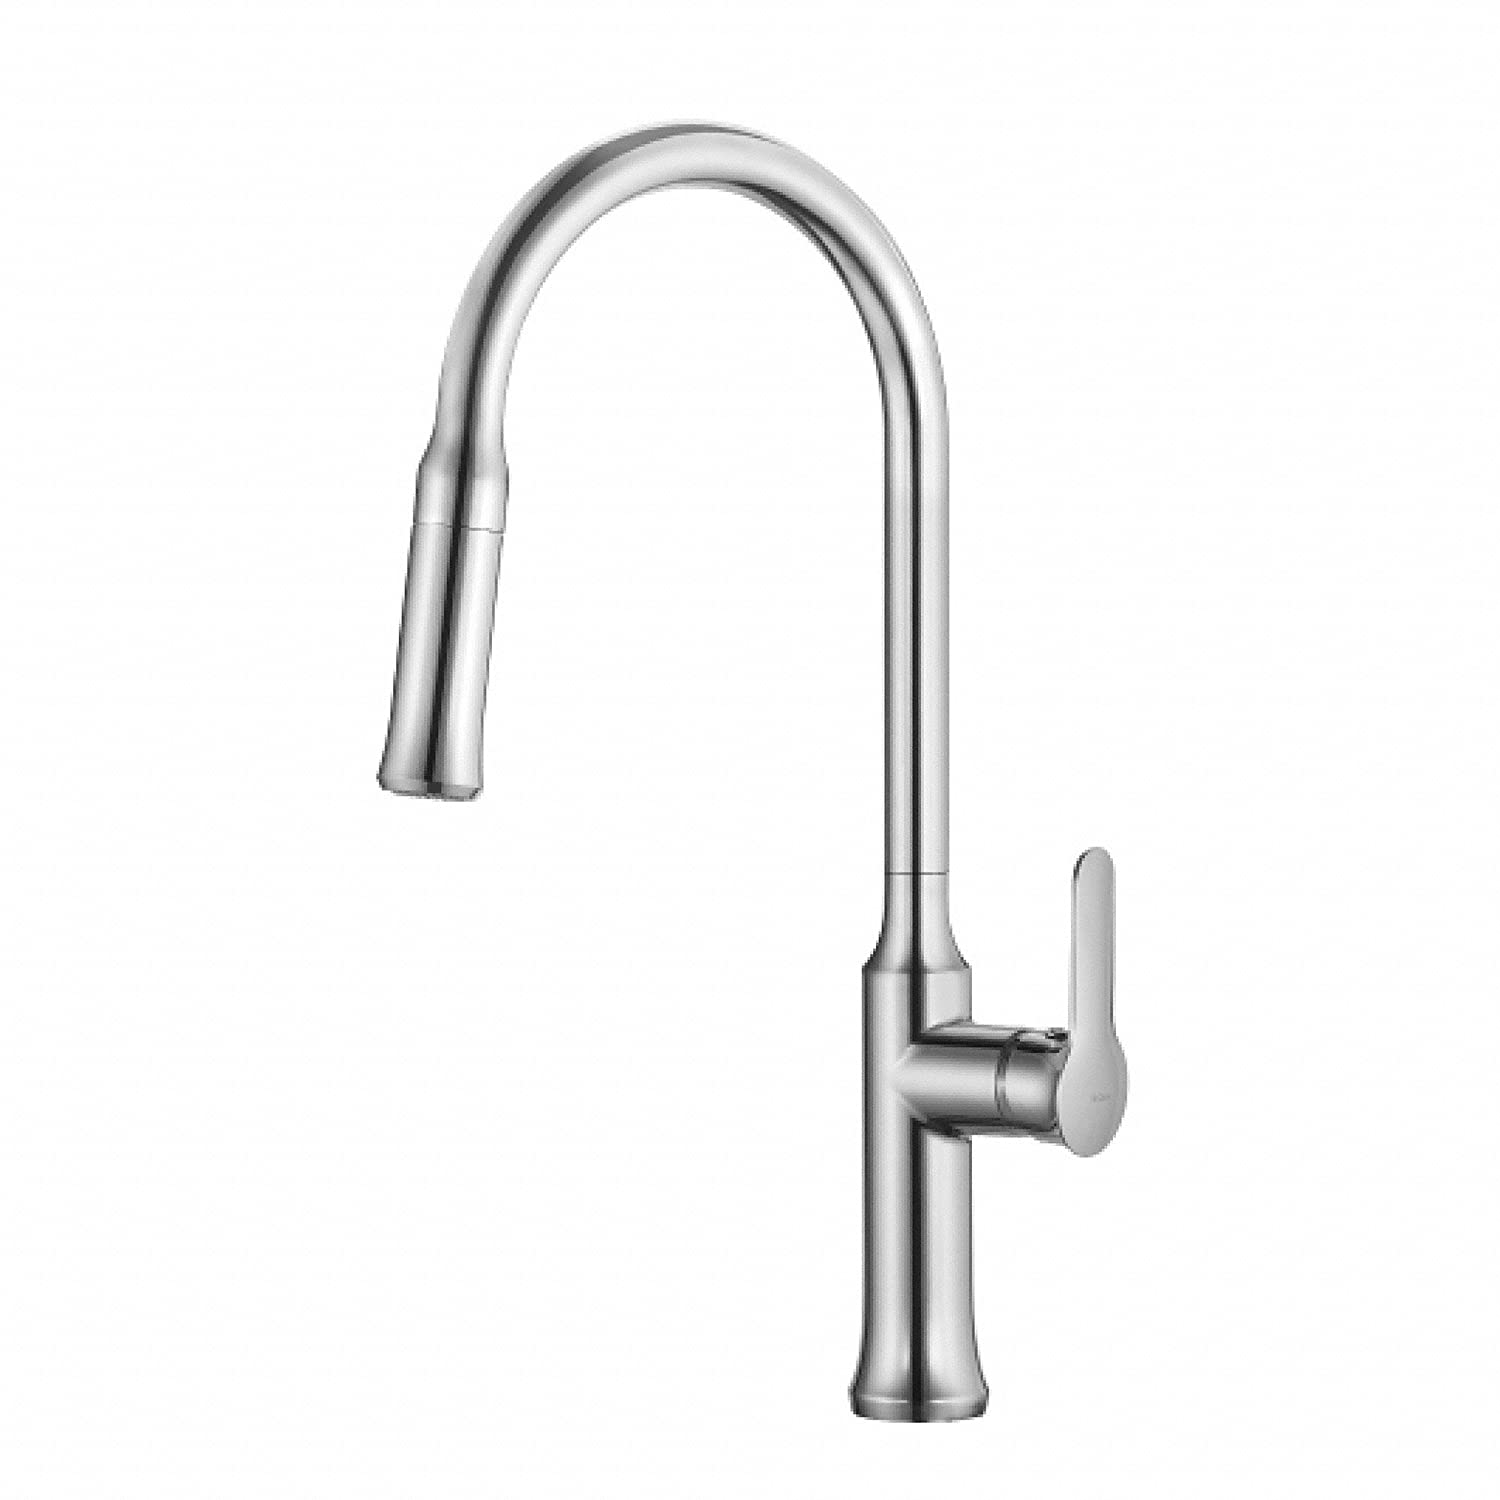 Kraus KPF 1630CH Nola Single Lever Pull Down Kitchen Faucet Chrome Finish      Amazon.com